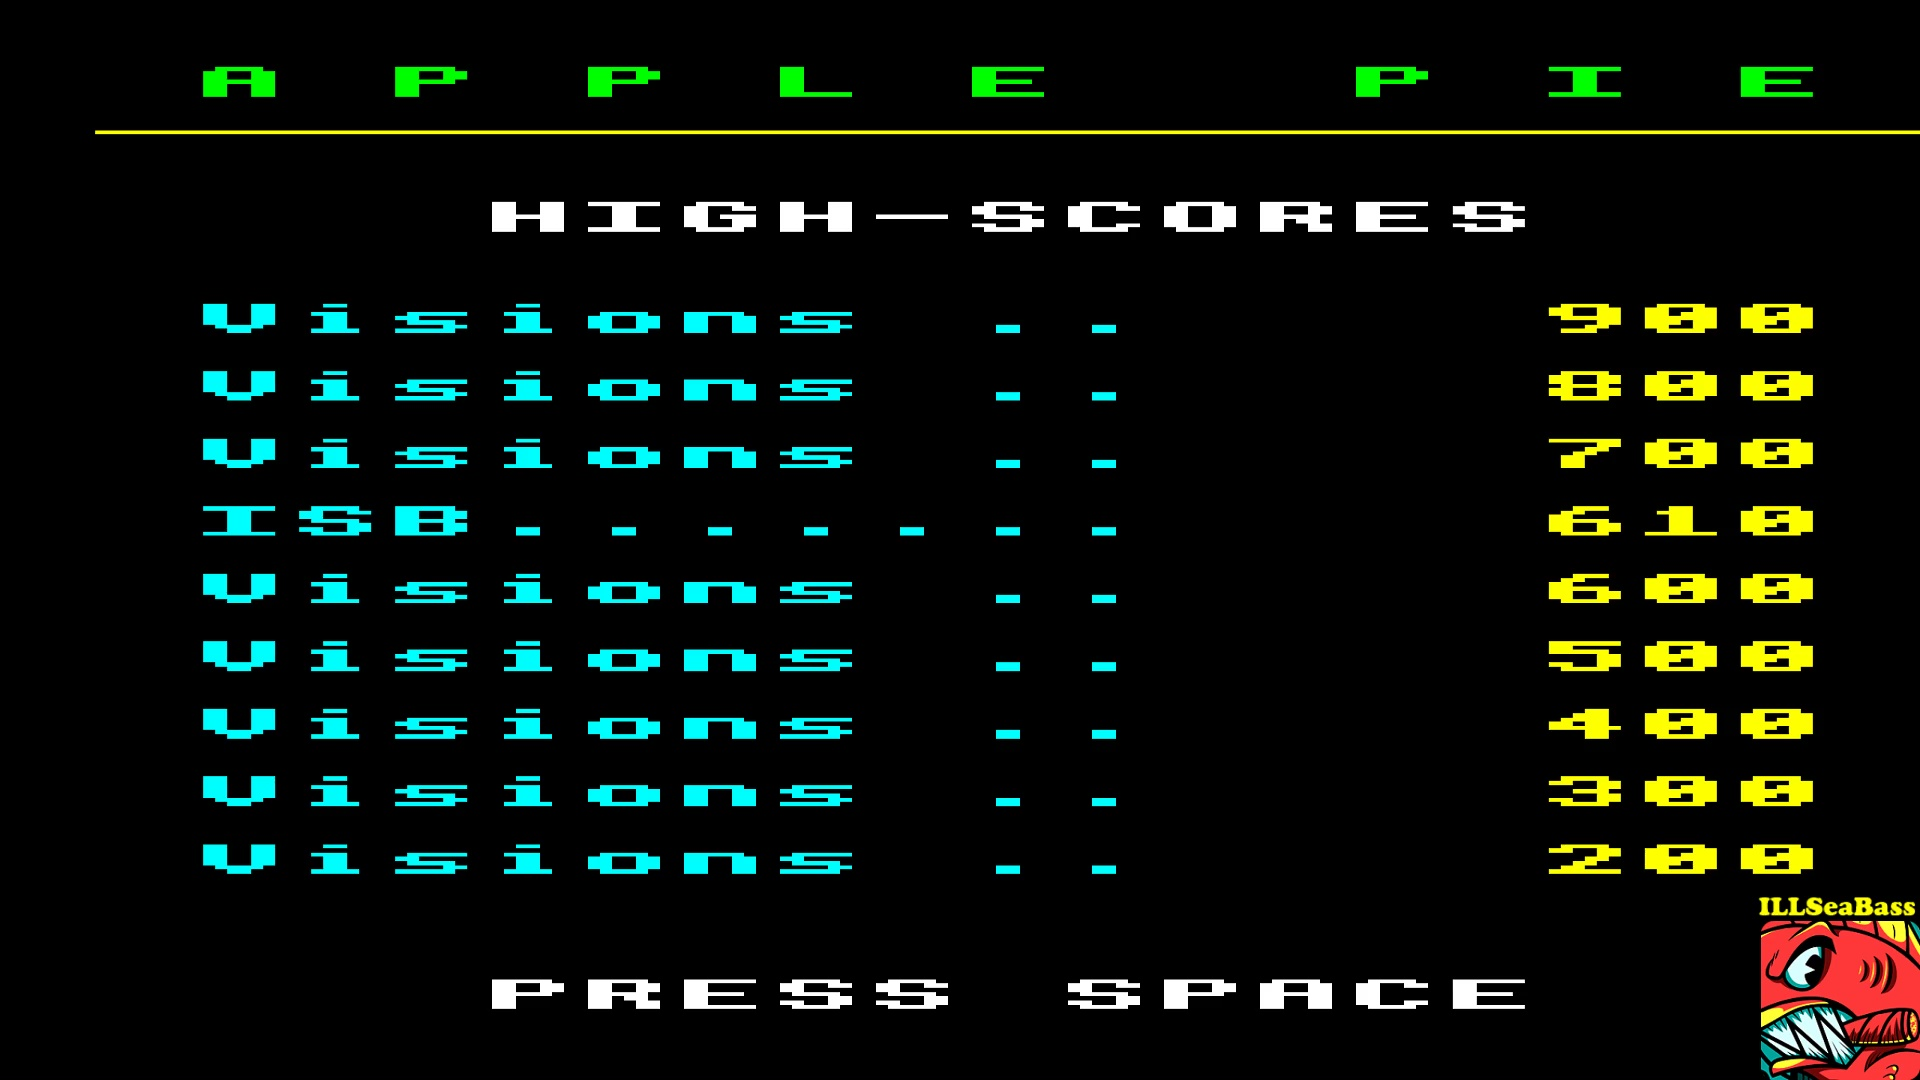 ILLSeaBass: Apple Pie (BBC Micro Emulated) 610 points on 2017-10-08 21:00:35